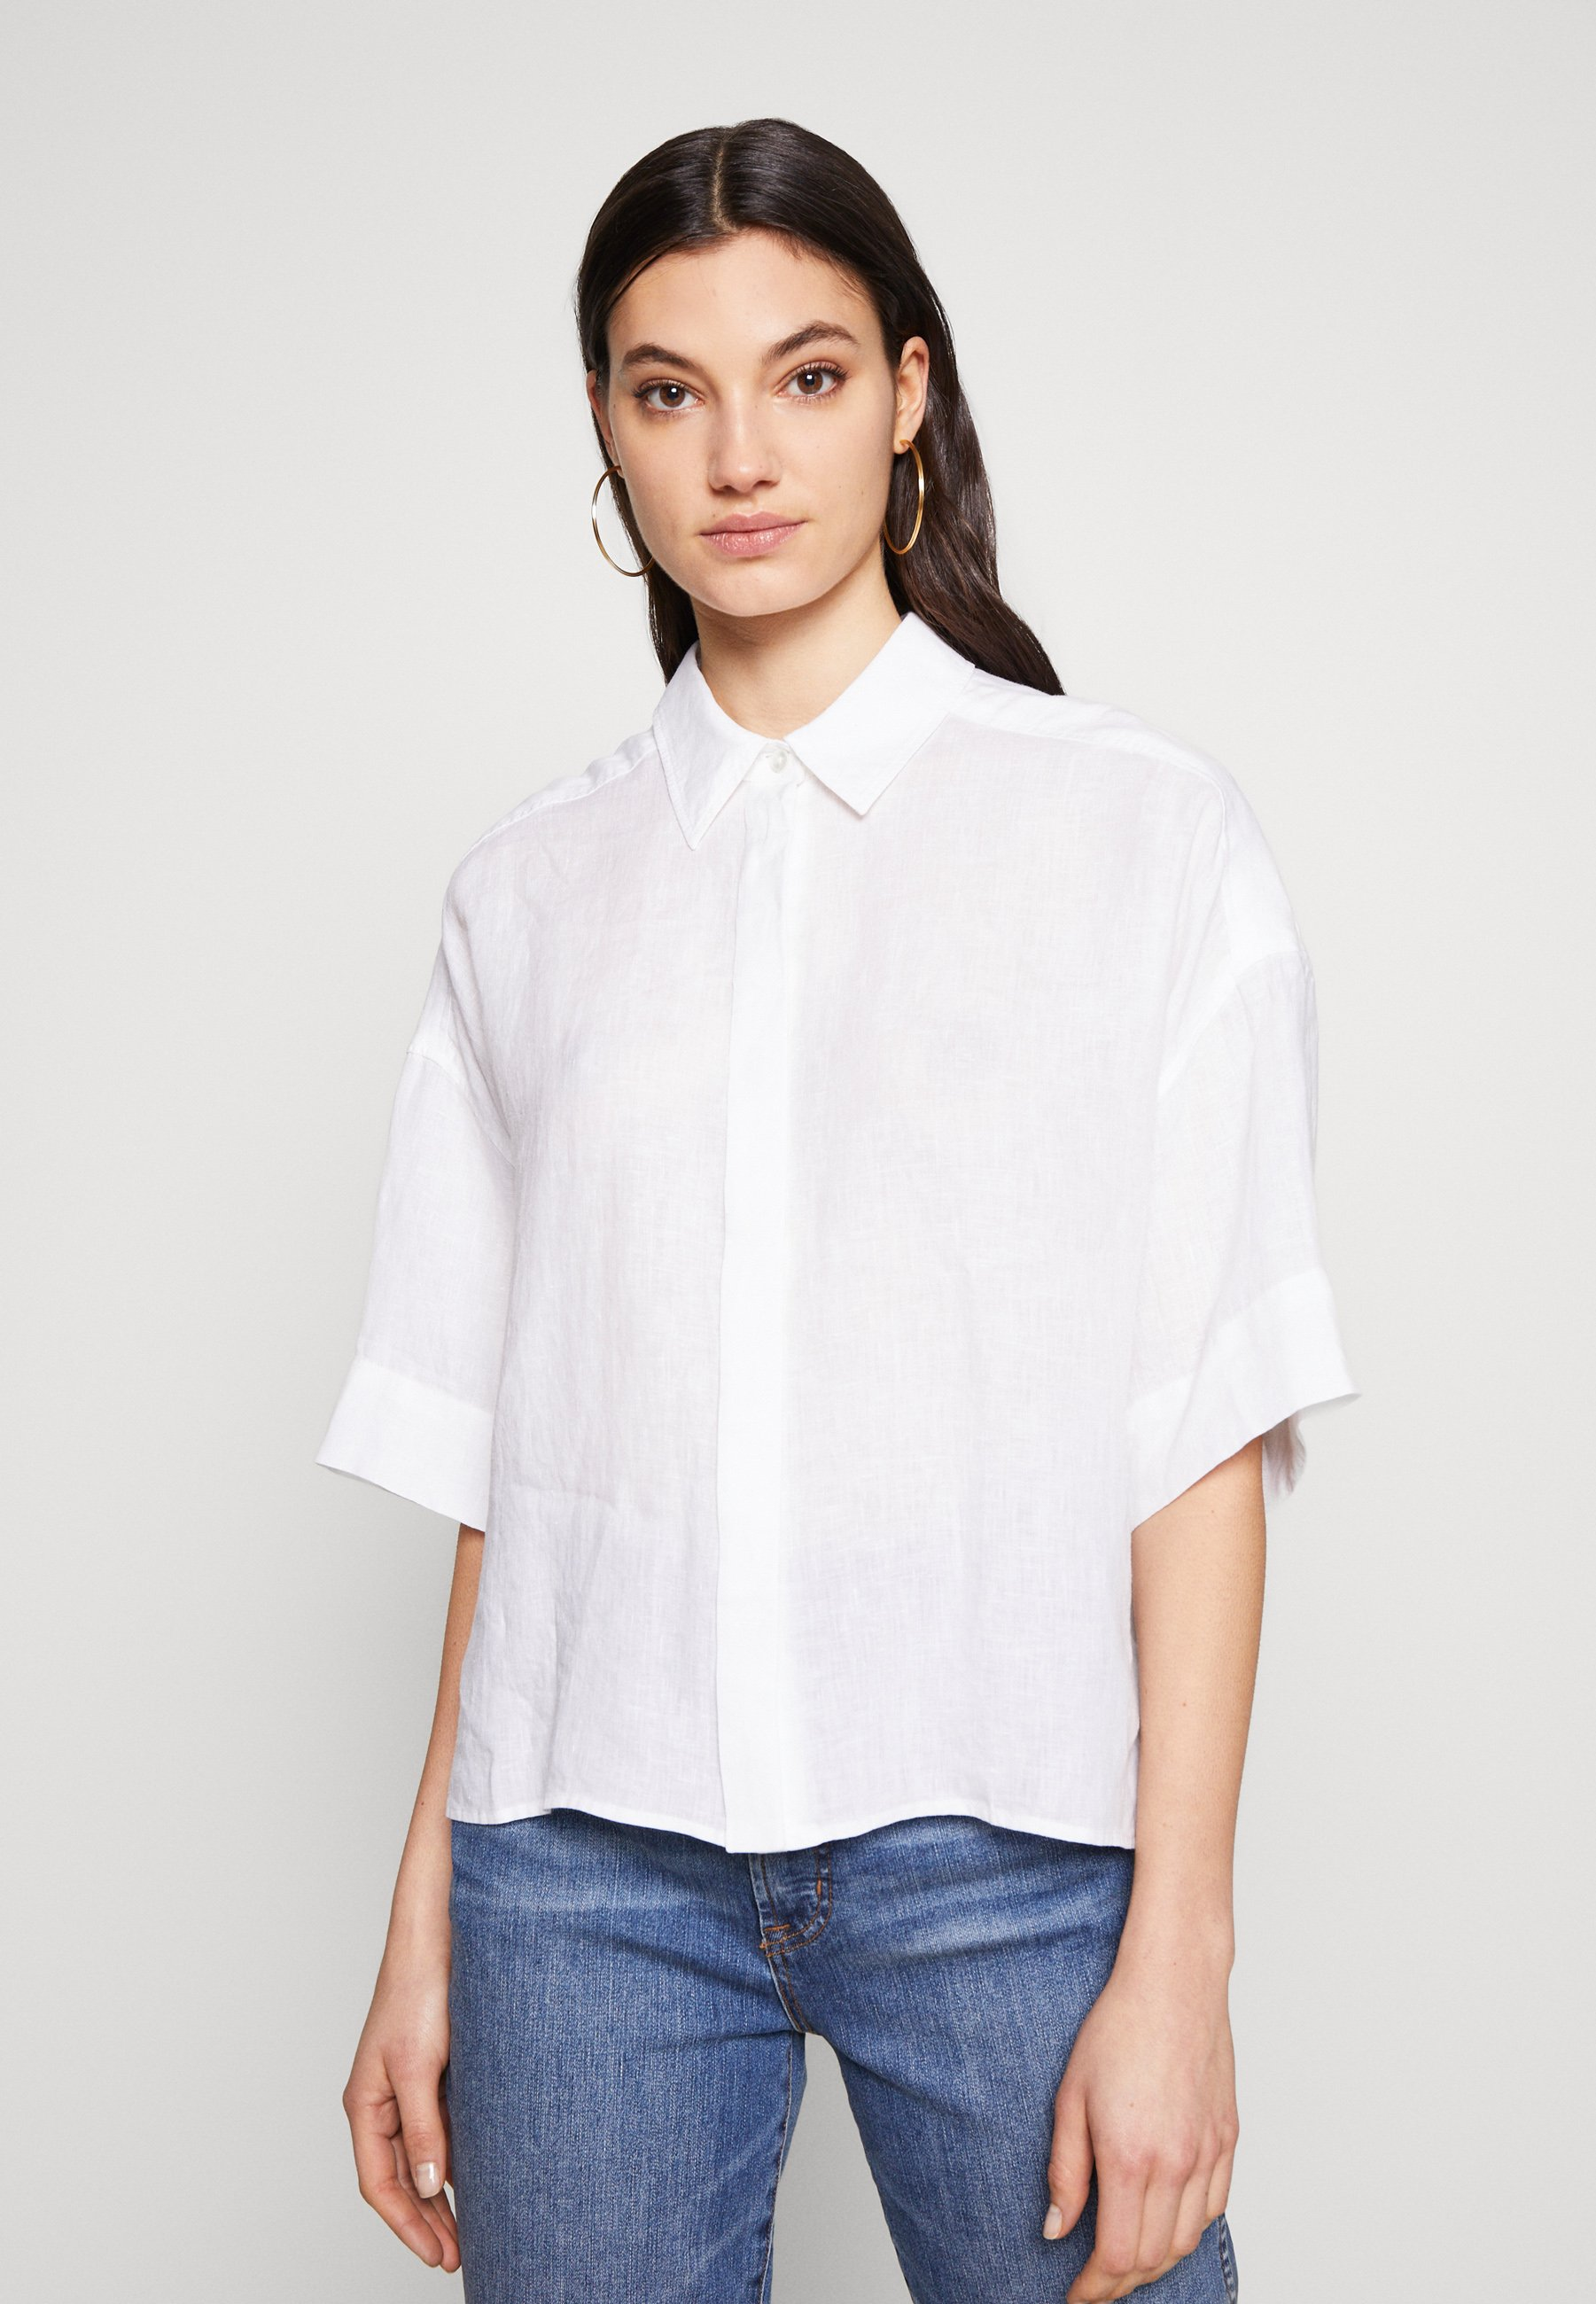 2020 Newest Women's Clothing DRYKORN THERRY Button-down blouse weiss Lk8OYY3Eb